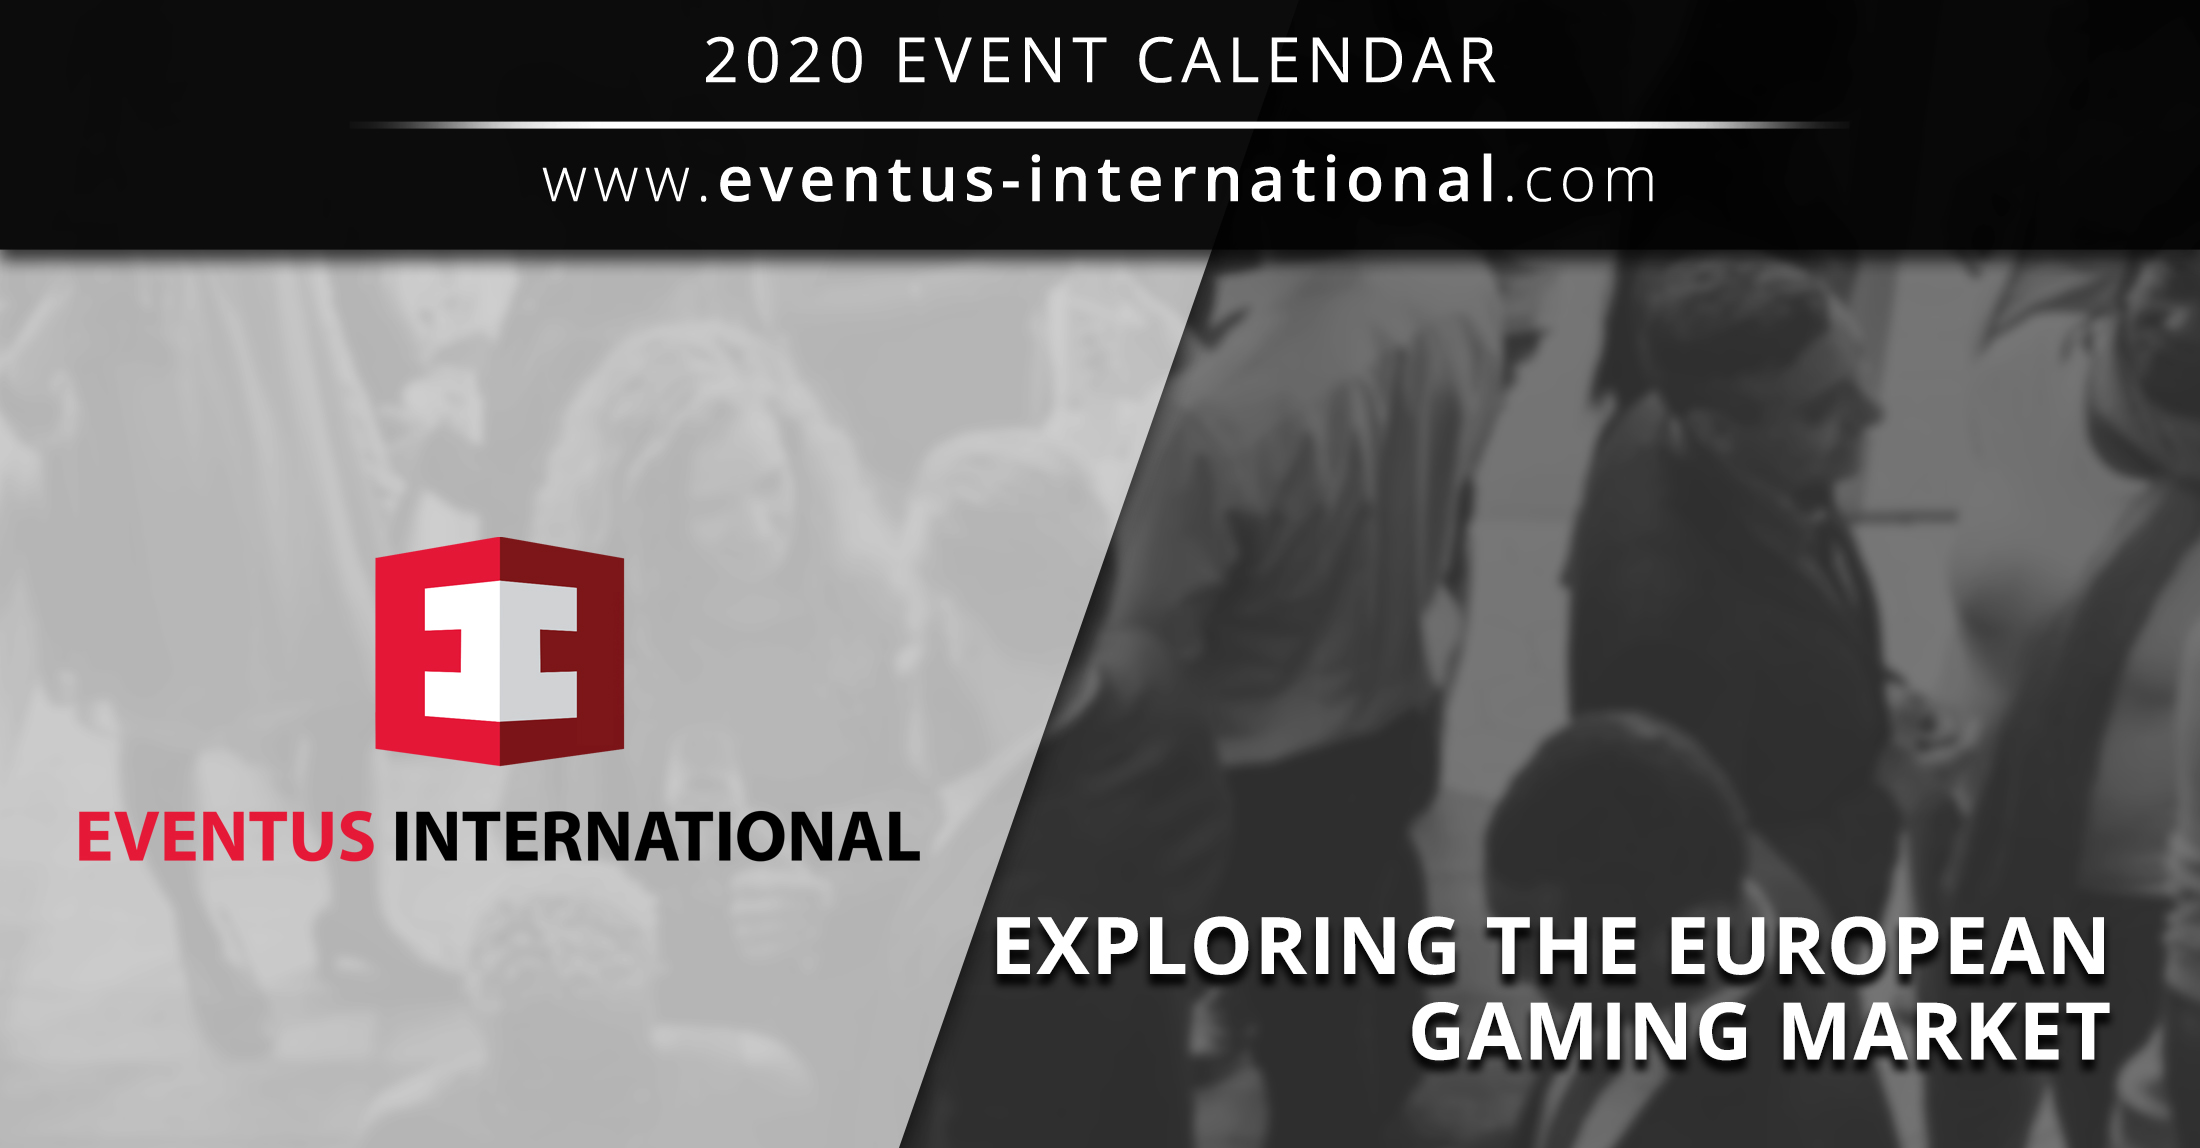 iGaming Summit Expo News: Taking A Look At The European Gaming Market